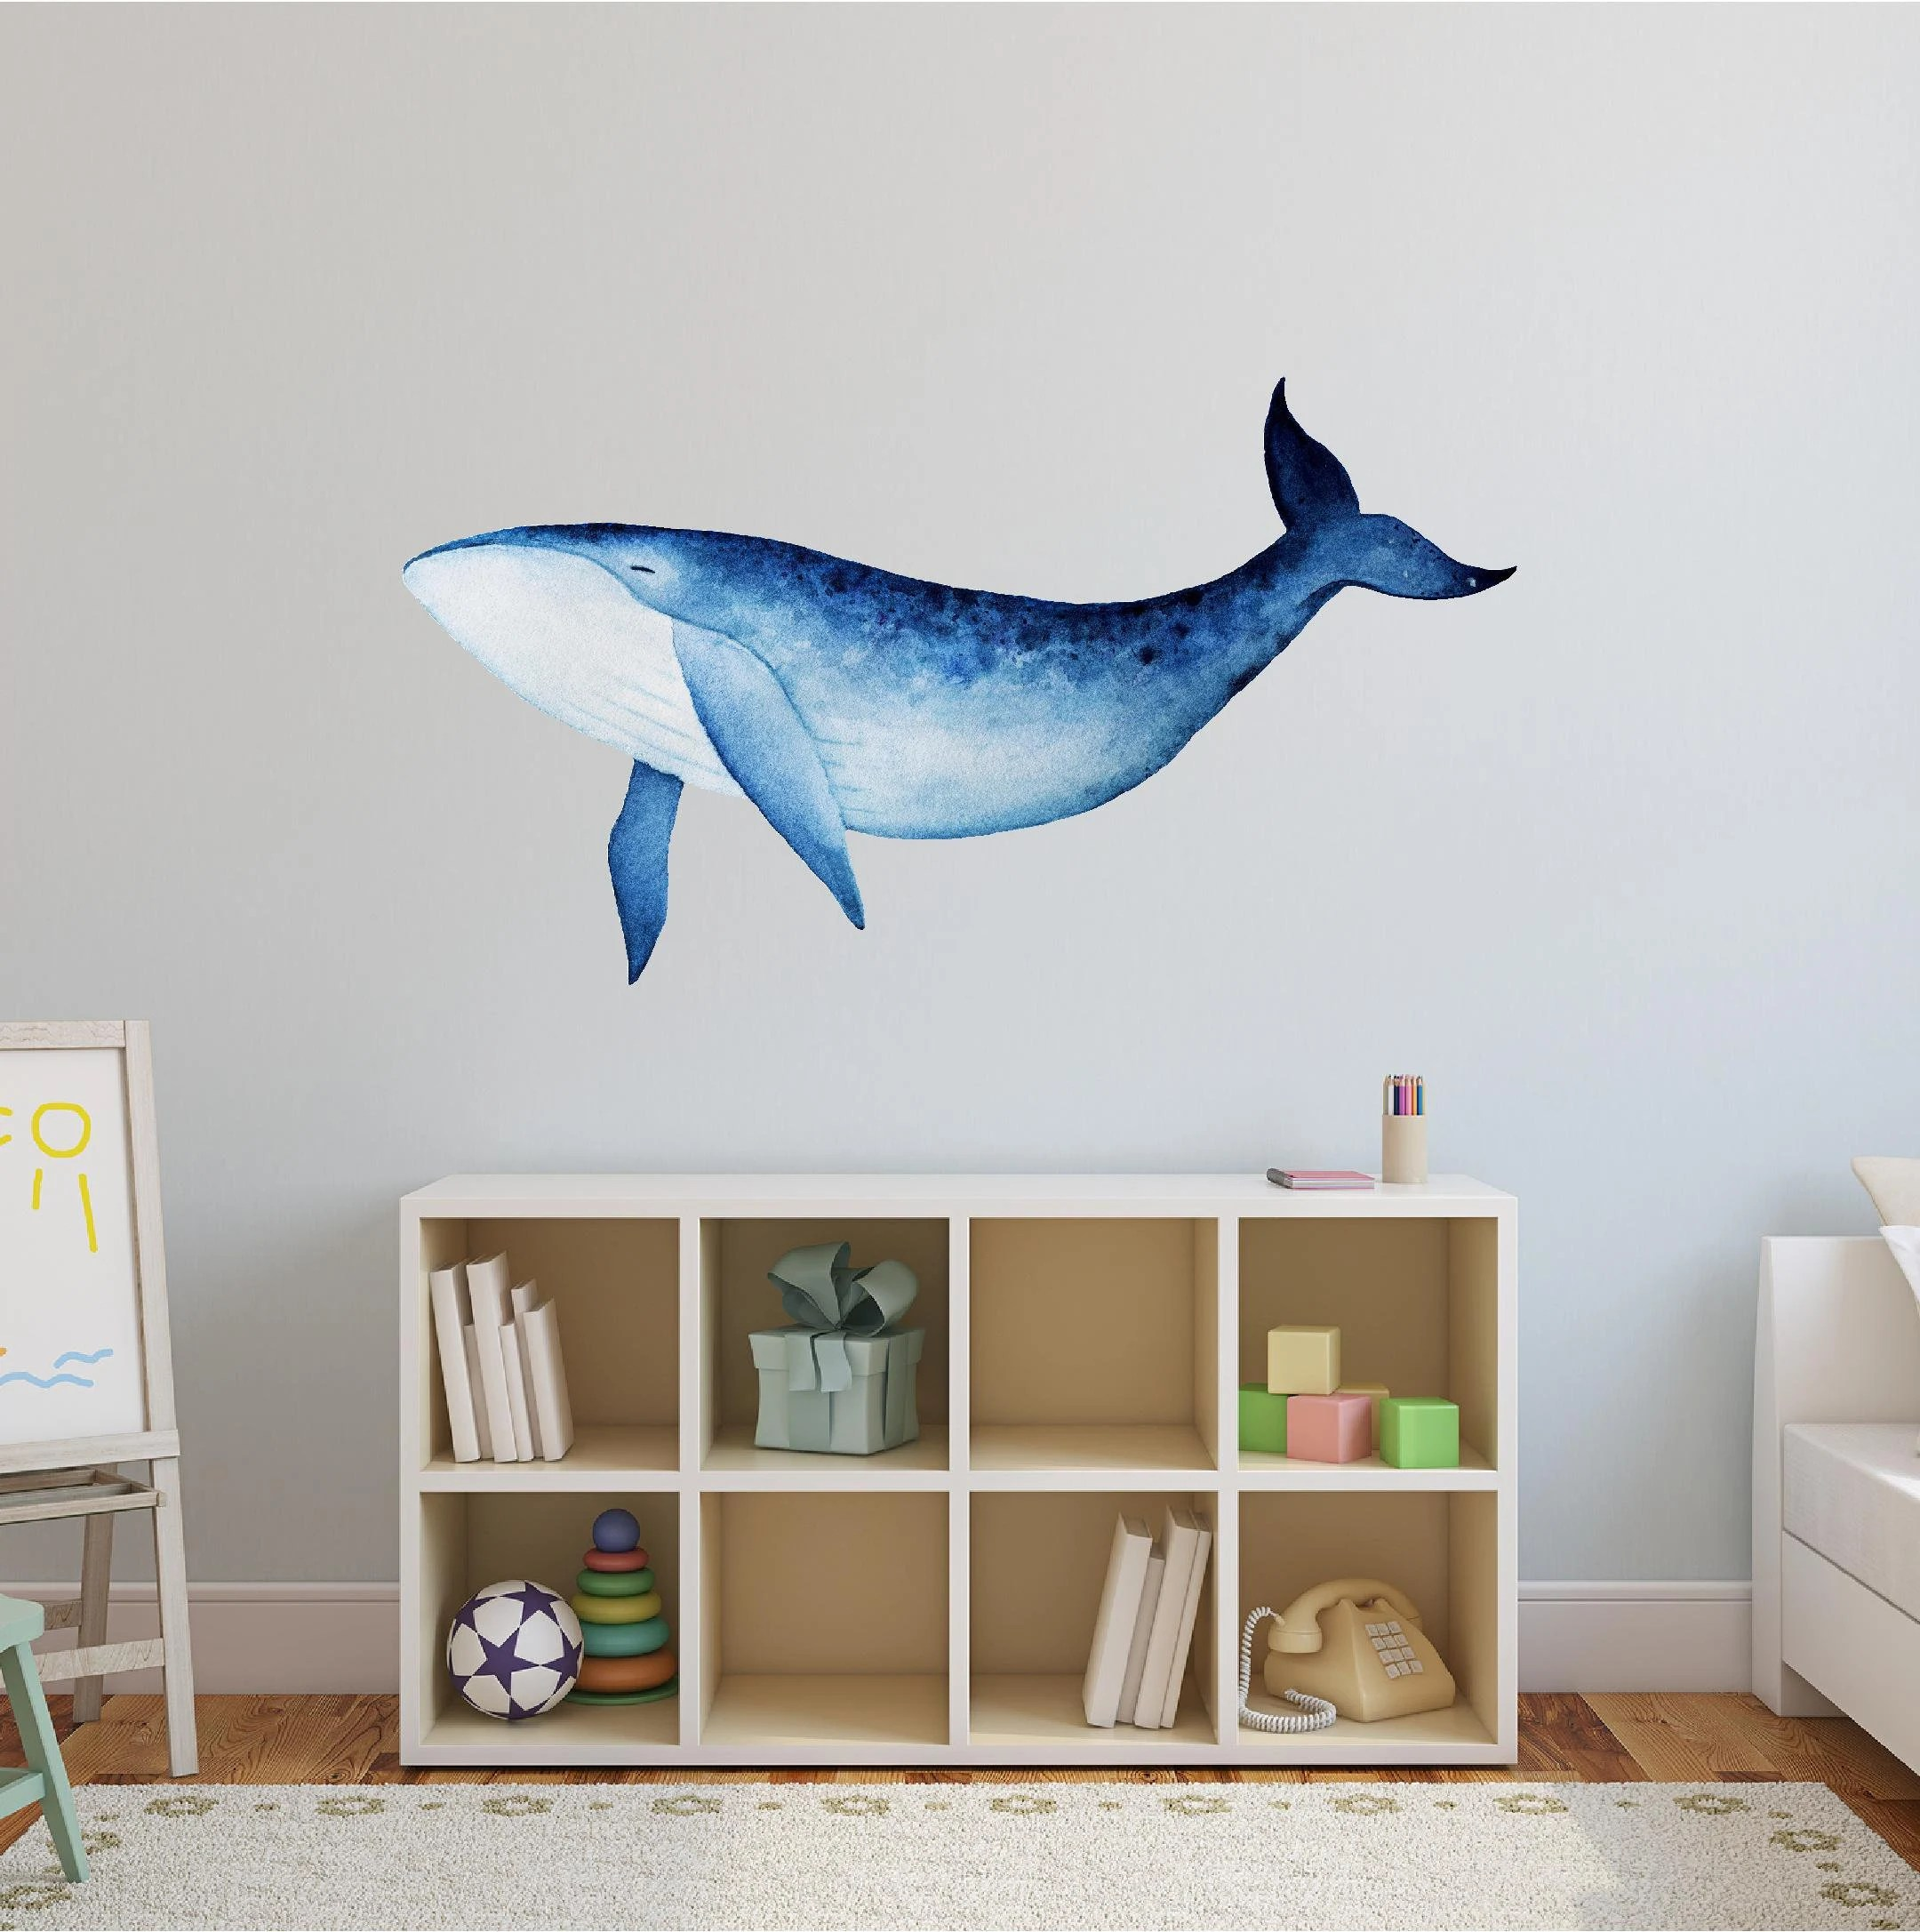 Design Vip Chambre De Bebe Blue Whale Wall Decal Sticker Nautical Nursery Baby Room Decor Ocean Sea Wall Art Baby Shower Gift Removable Self Adhesive Vinyl